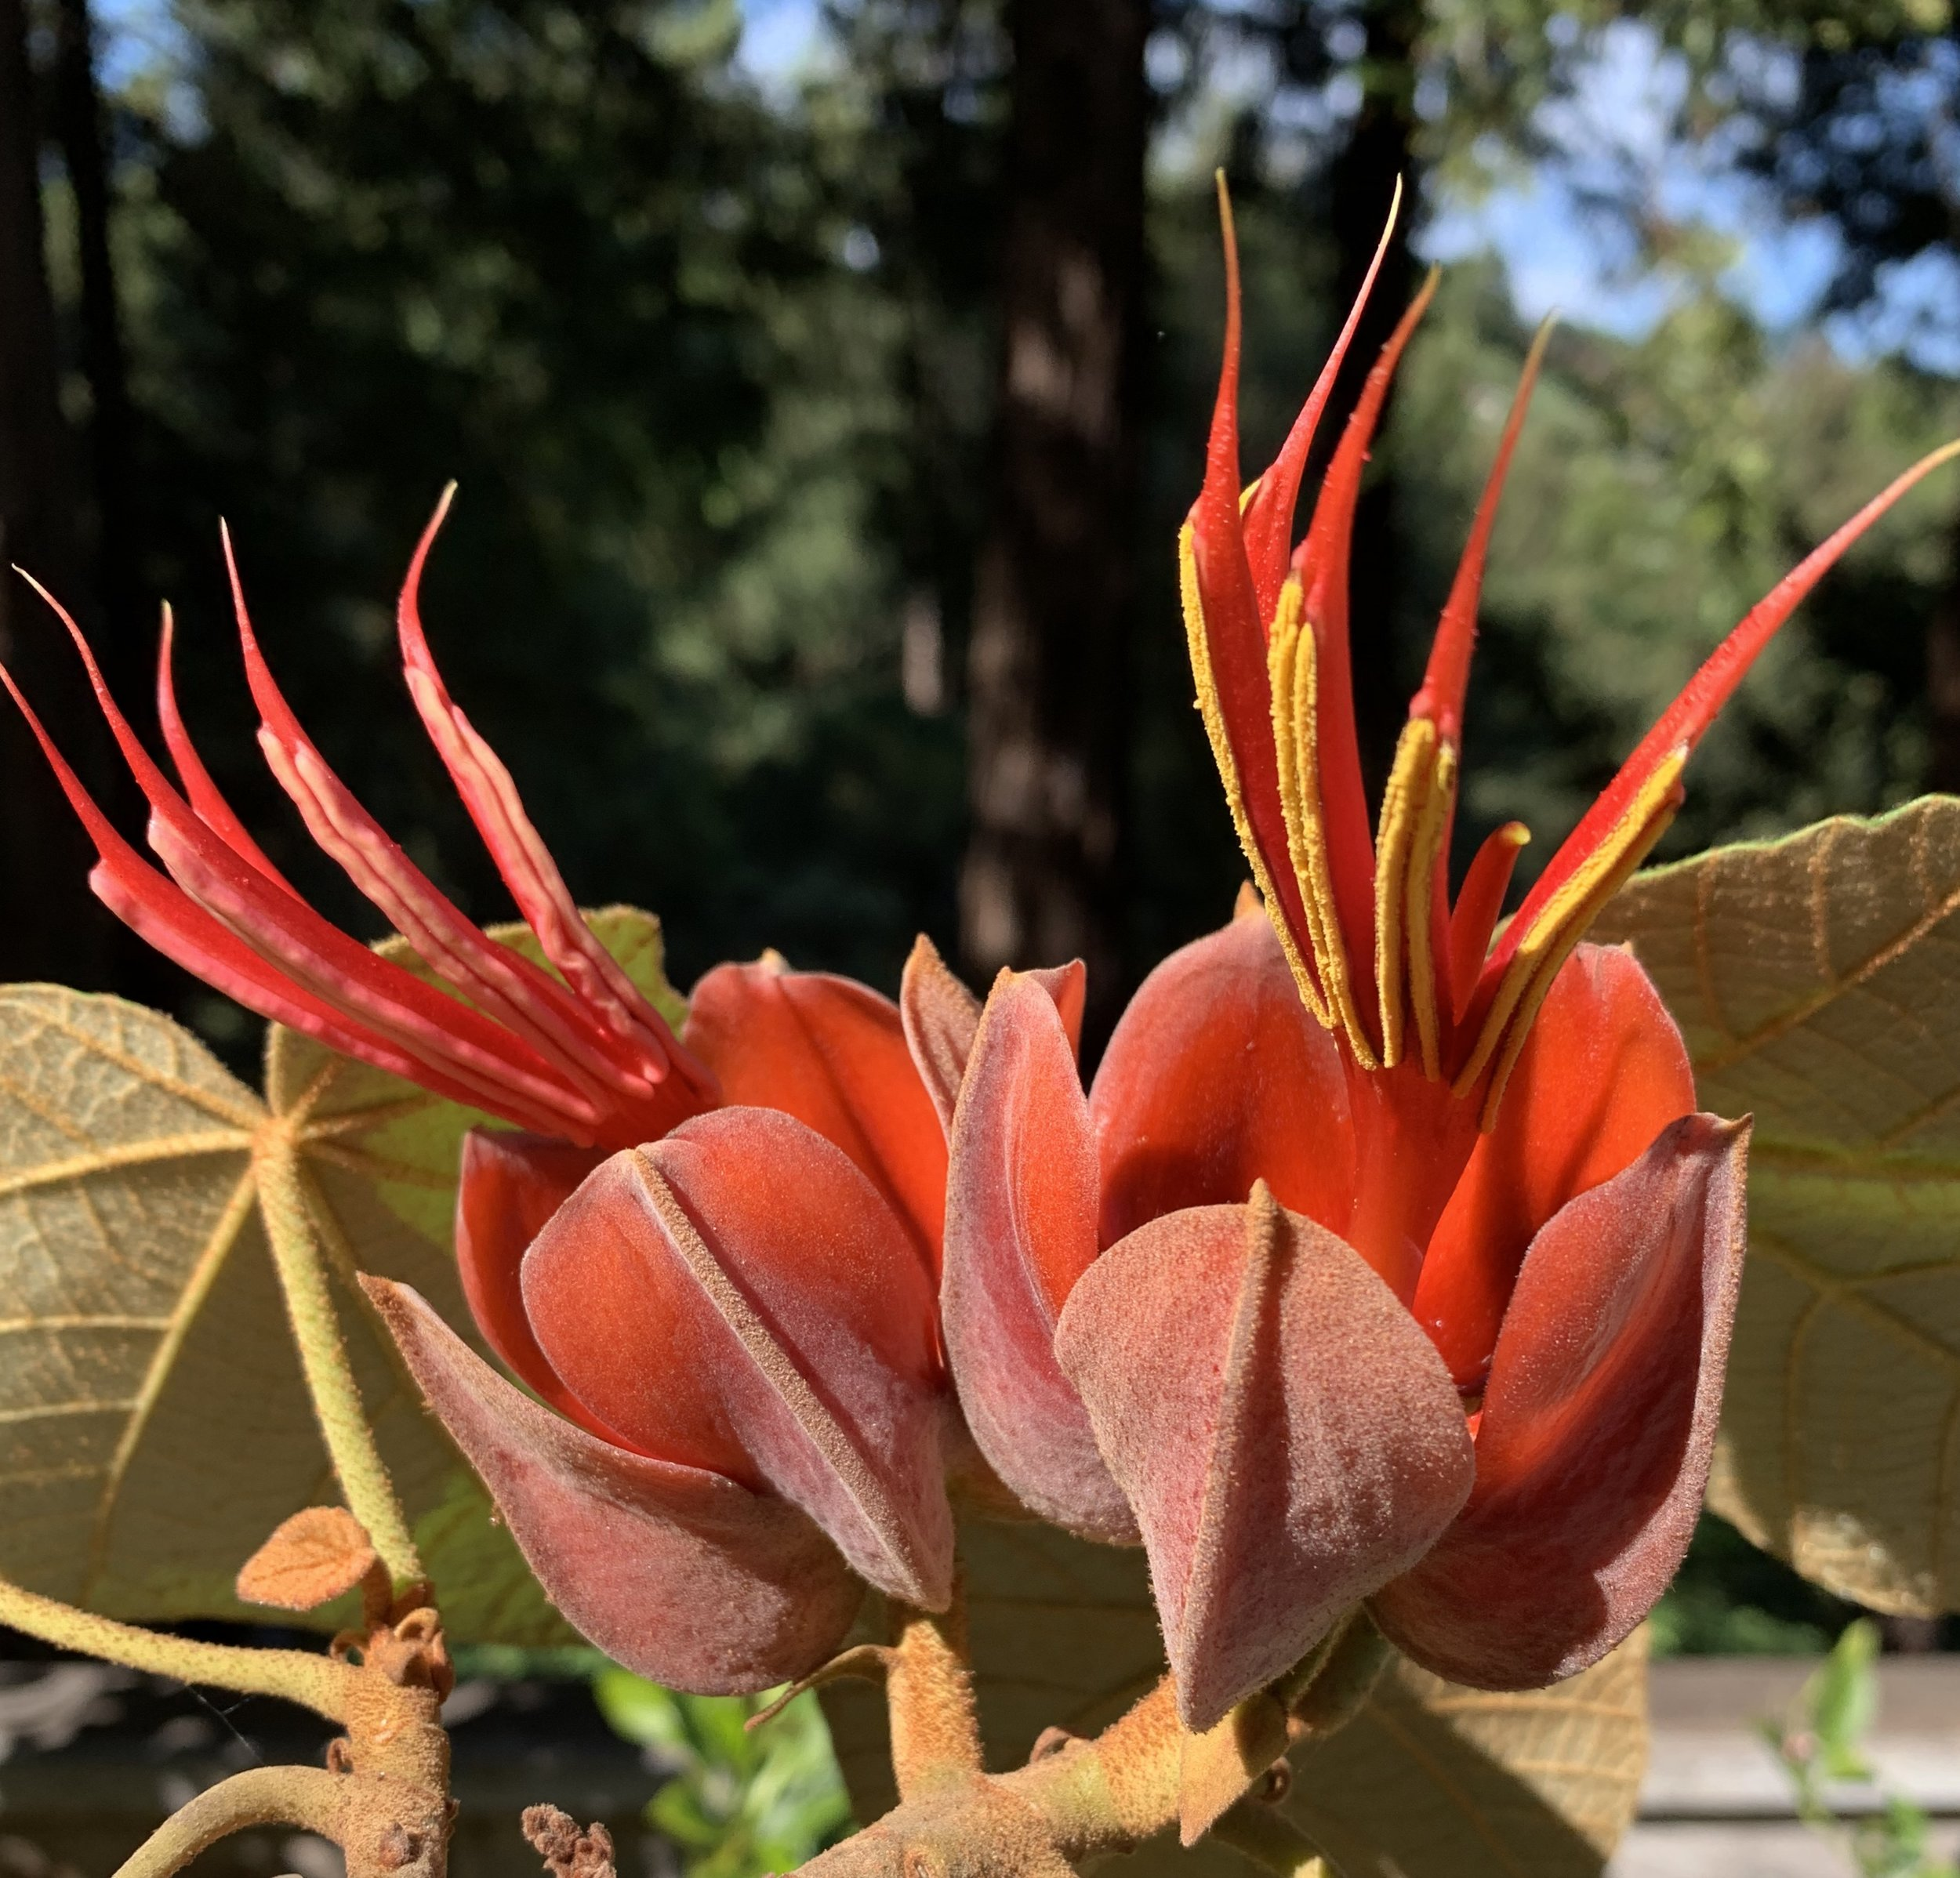 The bizarre and highly photogenic Chiranthodendron flower.